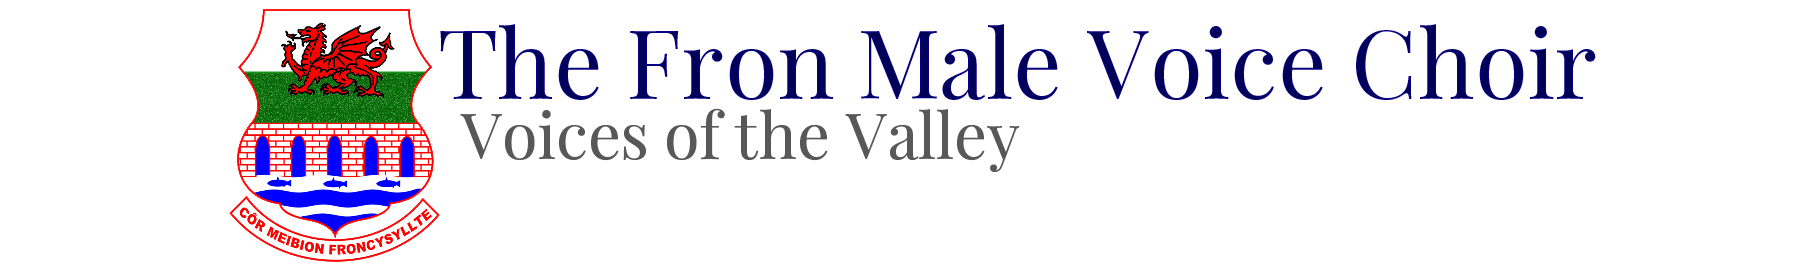 Fron Male Voice Choir Logo